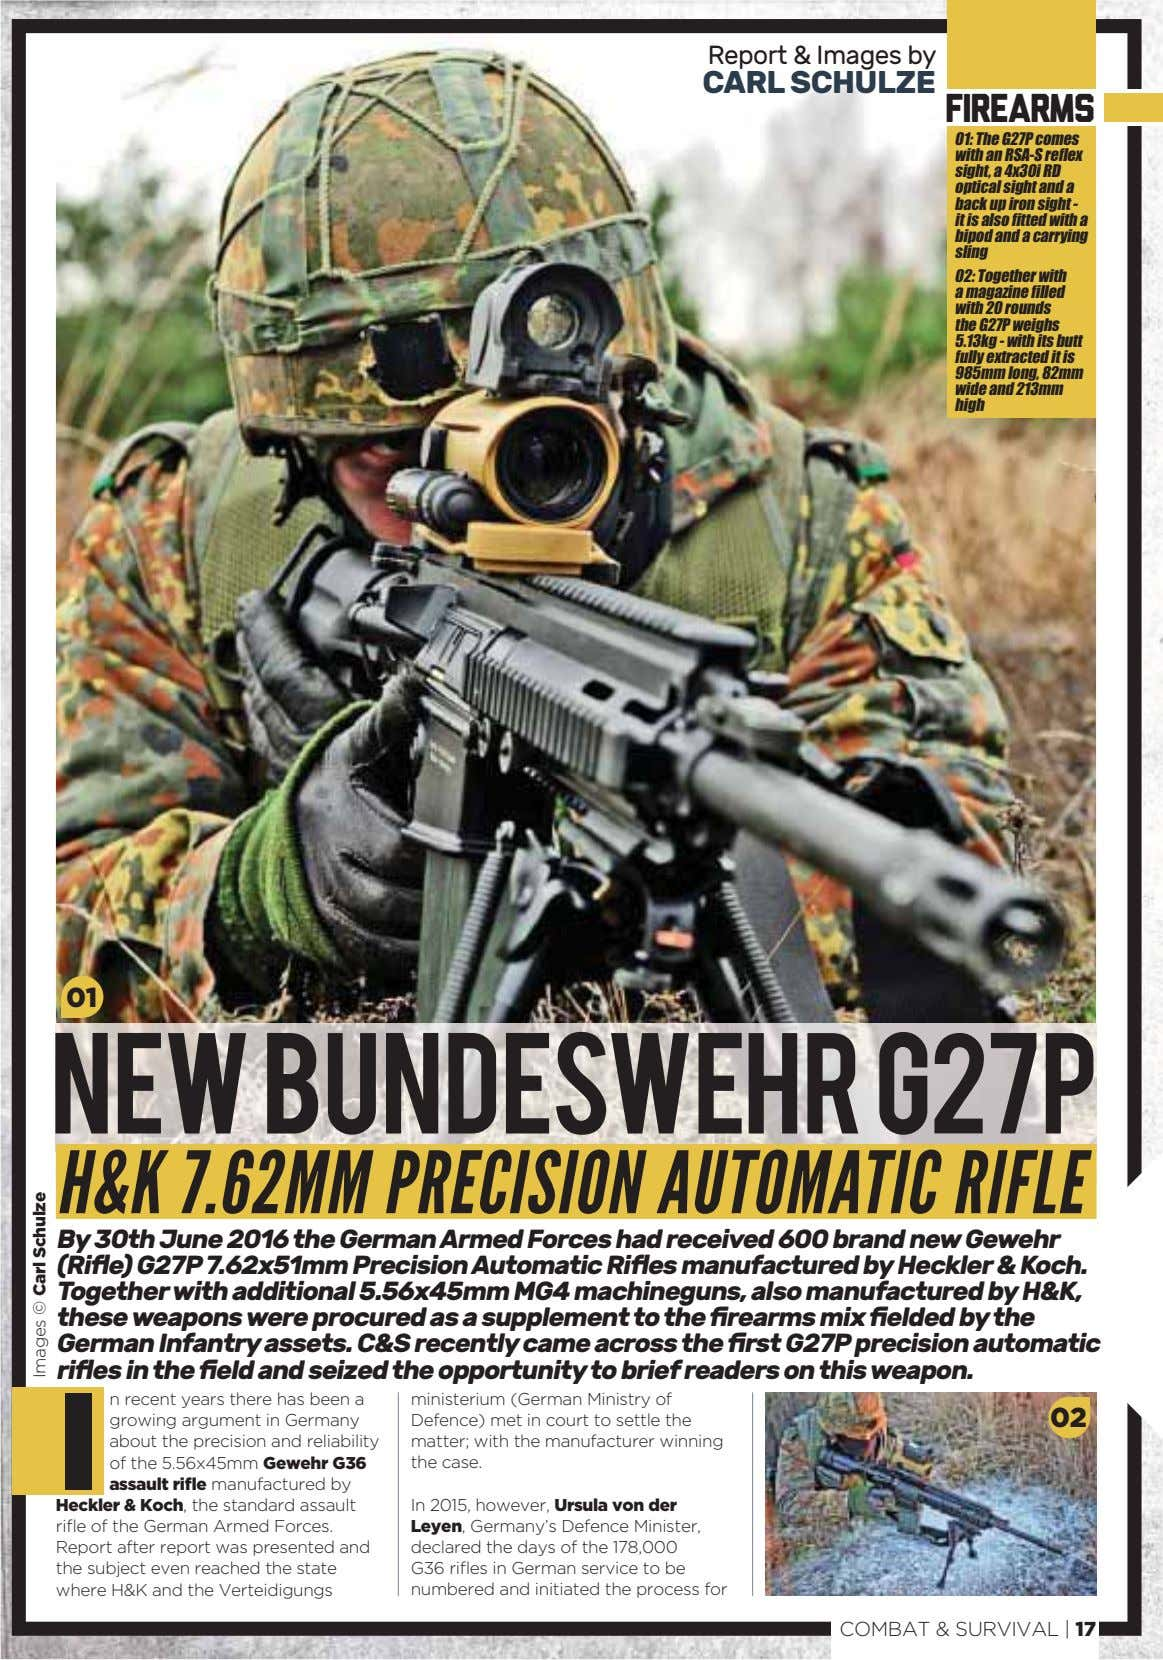 Report & Images by CARL SCHULZE firearms 01: The G27P comes with an RSA-S re